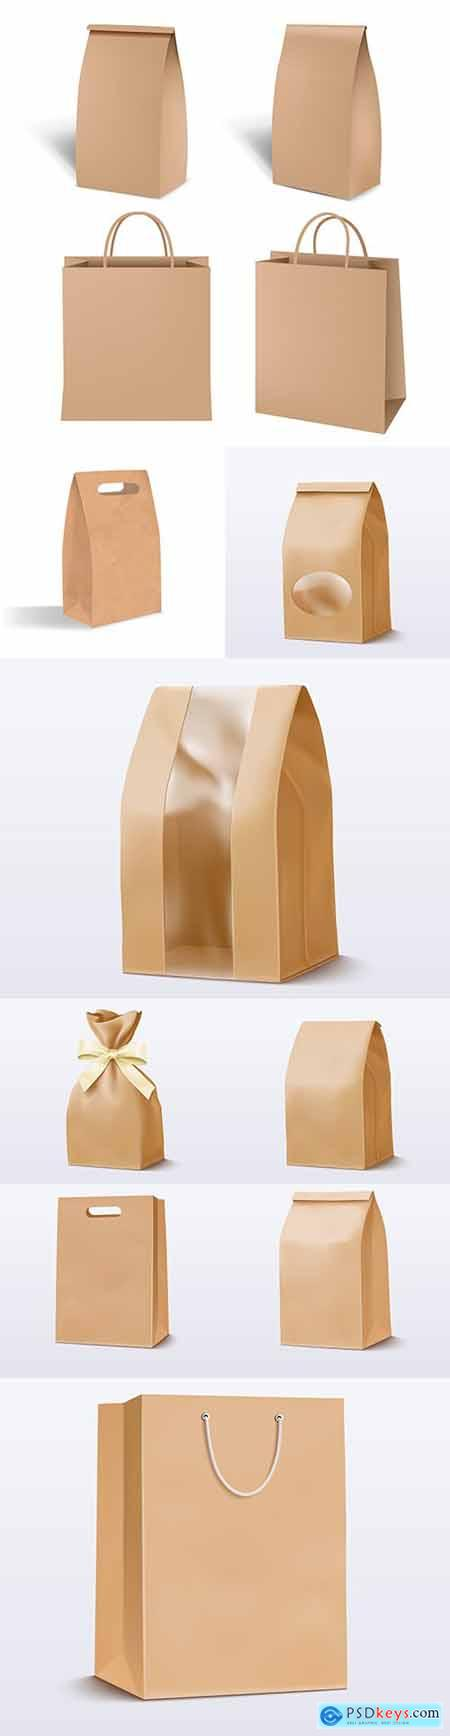 Paper brown bag for shopping package template illustration